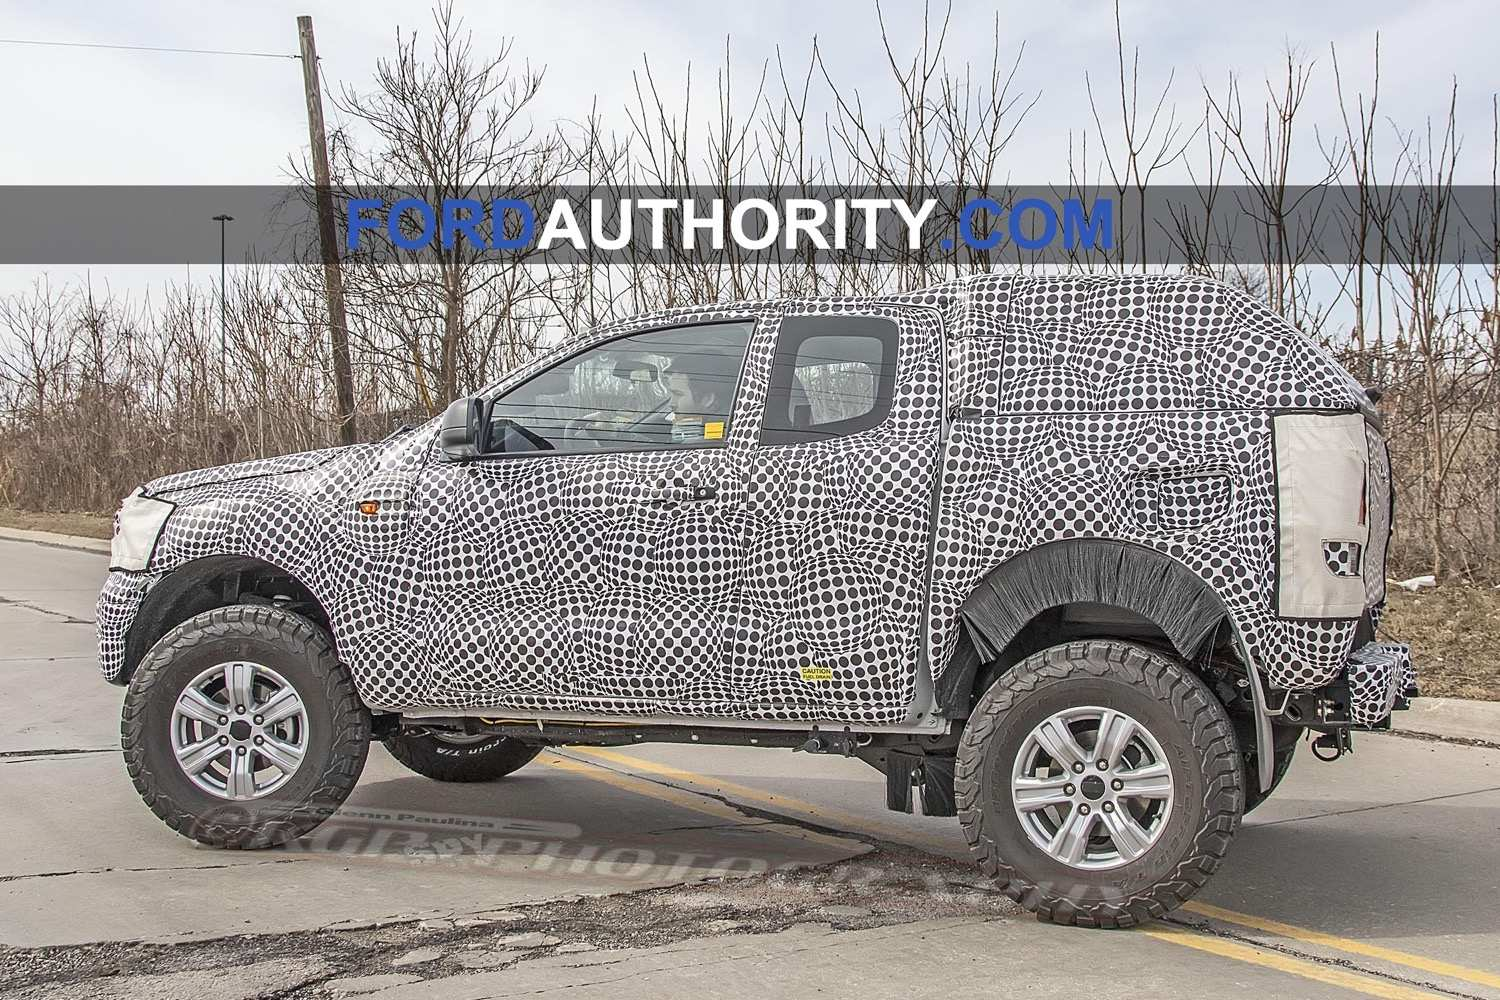 78 New 2020 Ford Bronco Xlt Spy Shoot for 2020 Ford Bronco Xlt